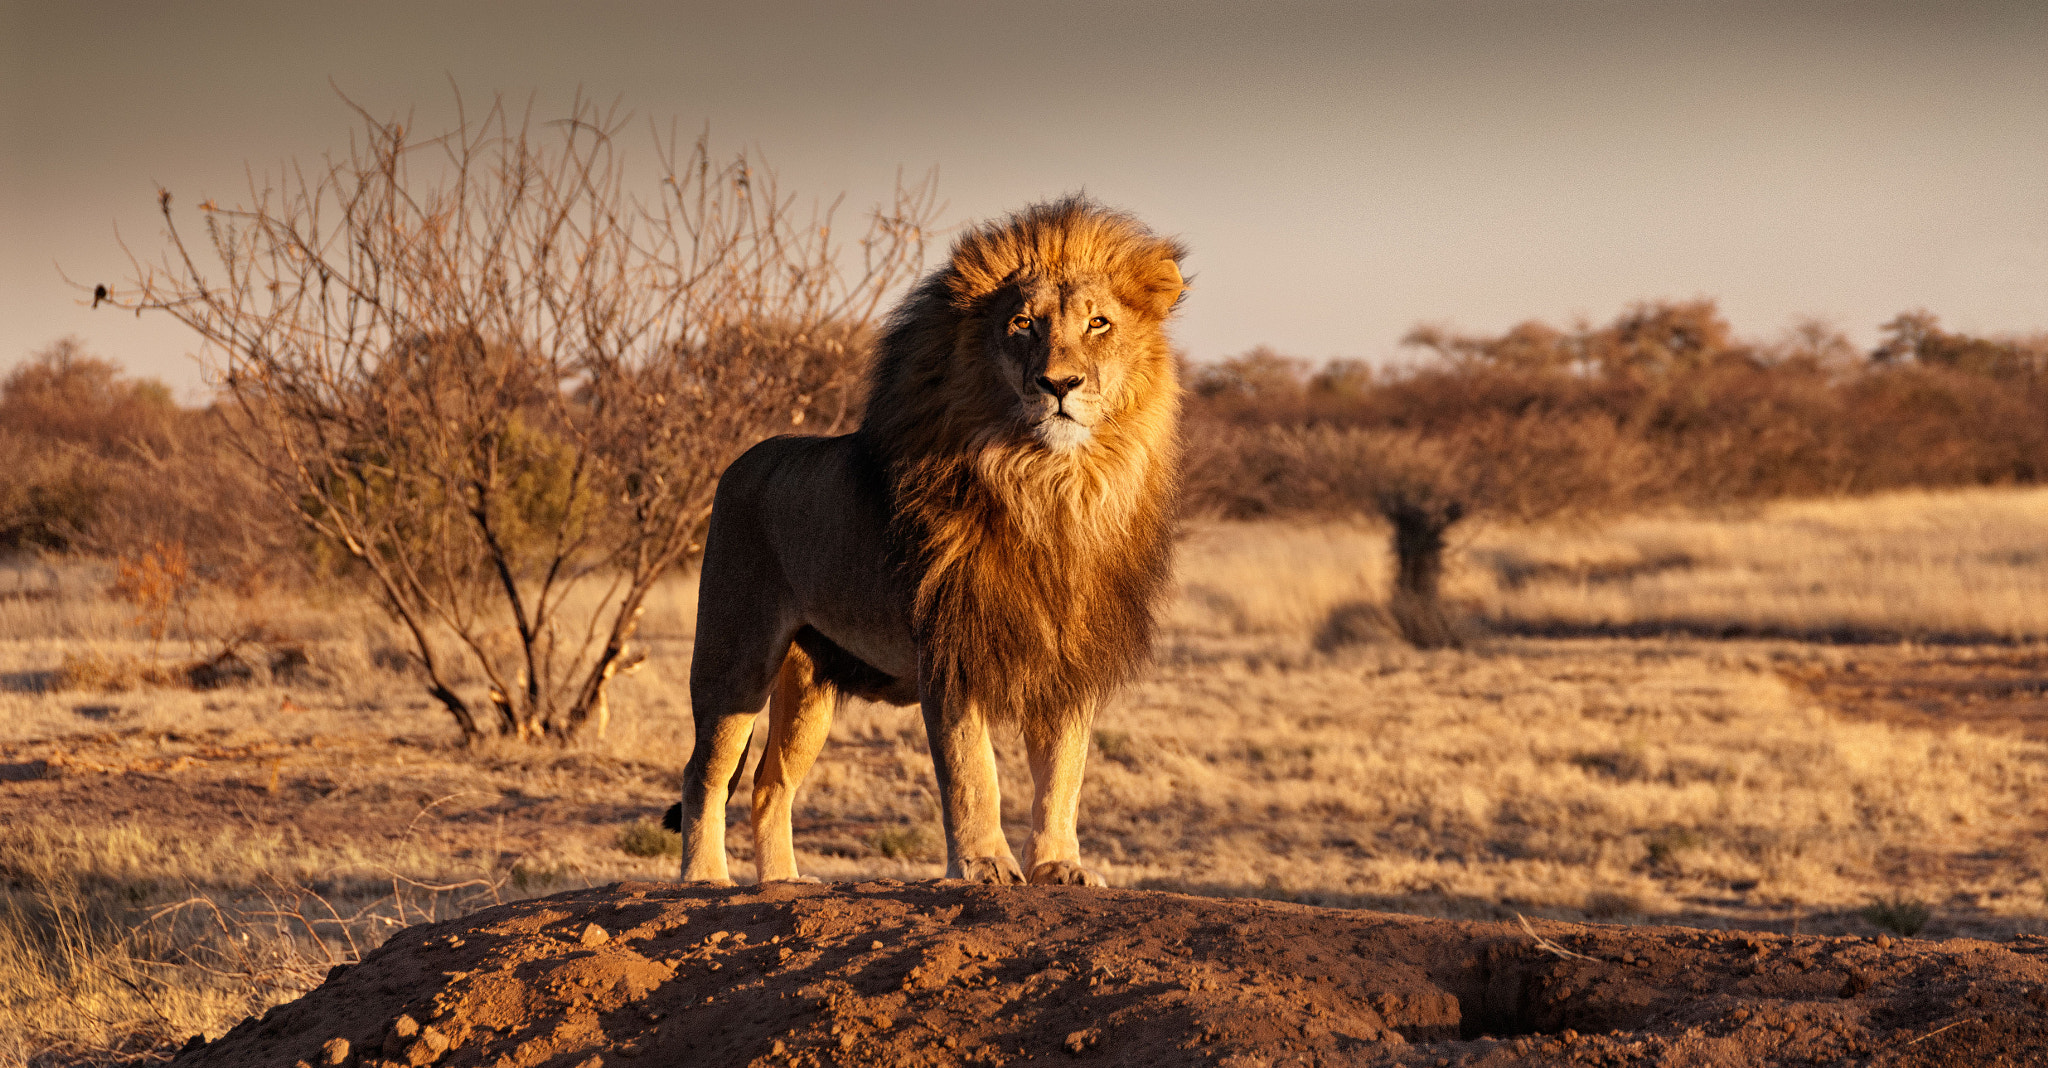 Photograph Return of the King by Andrew Deer on 500px